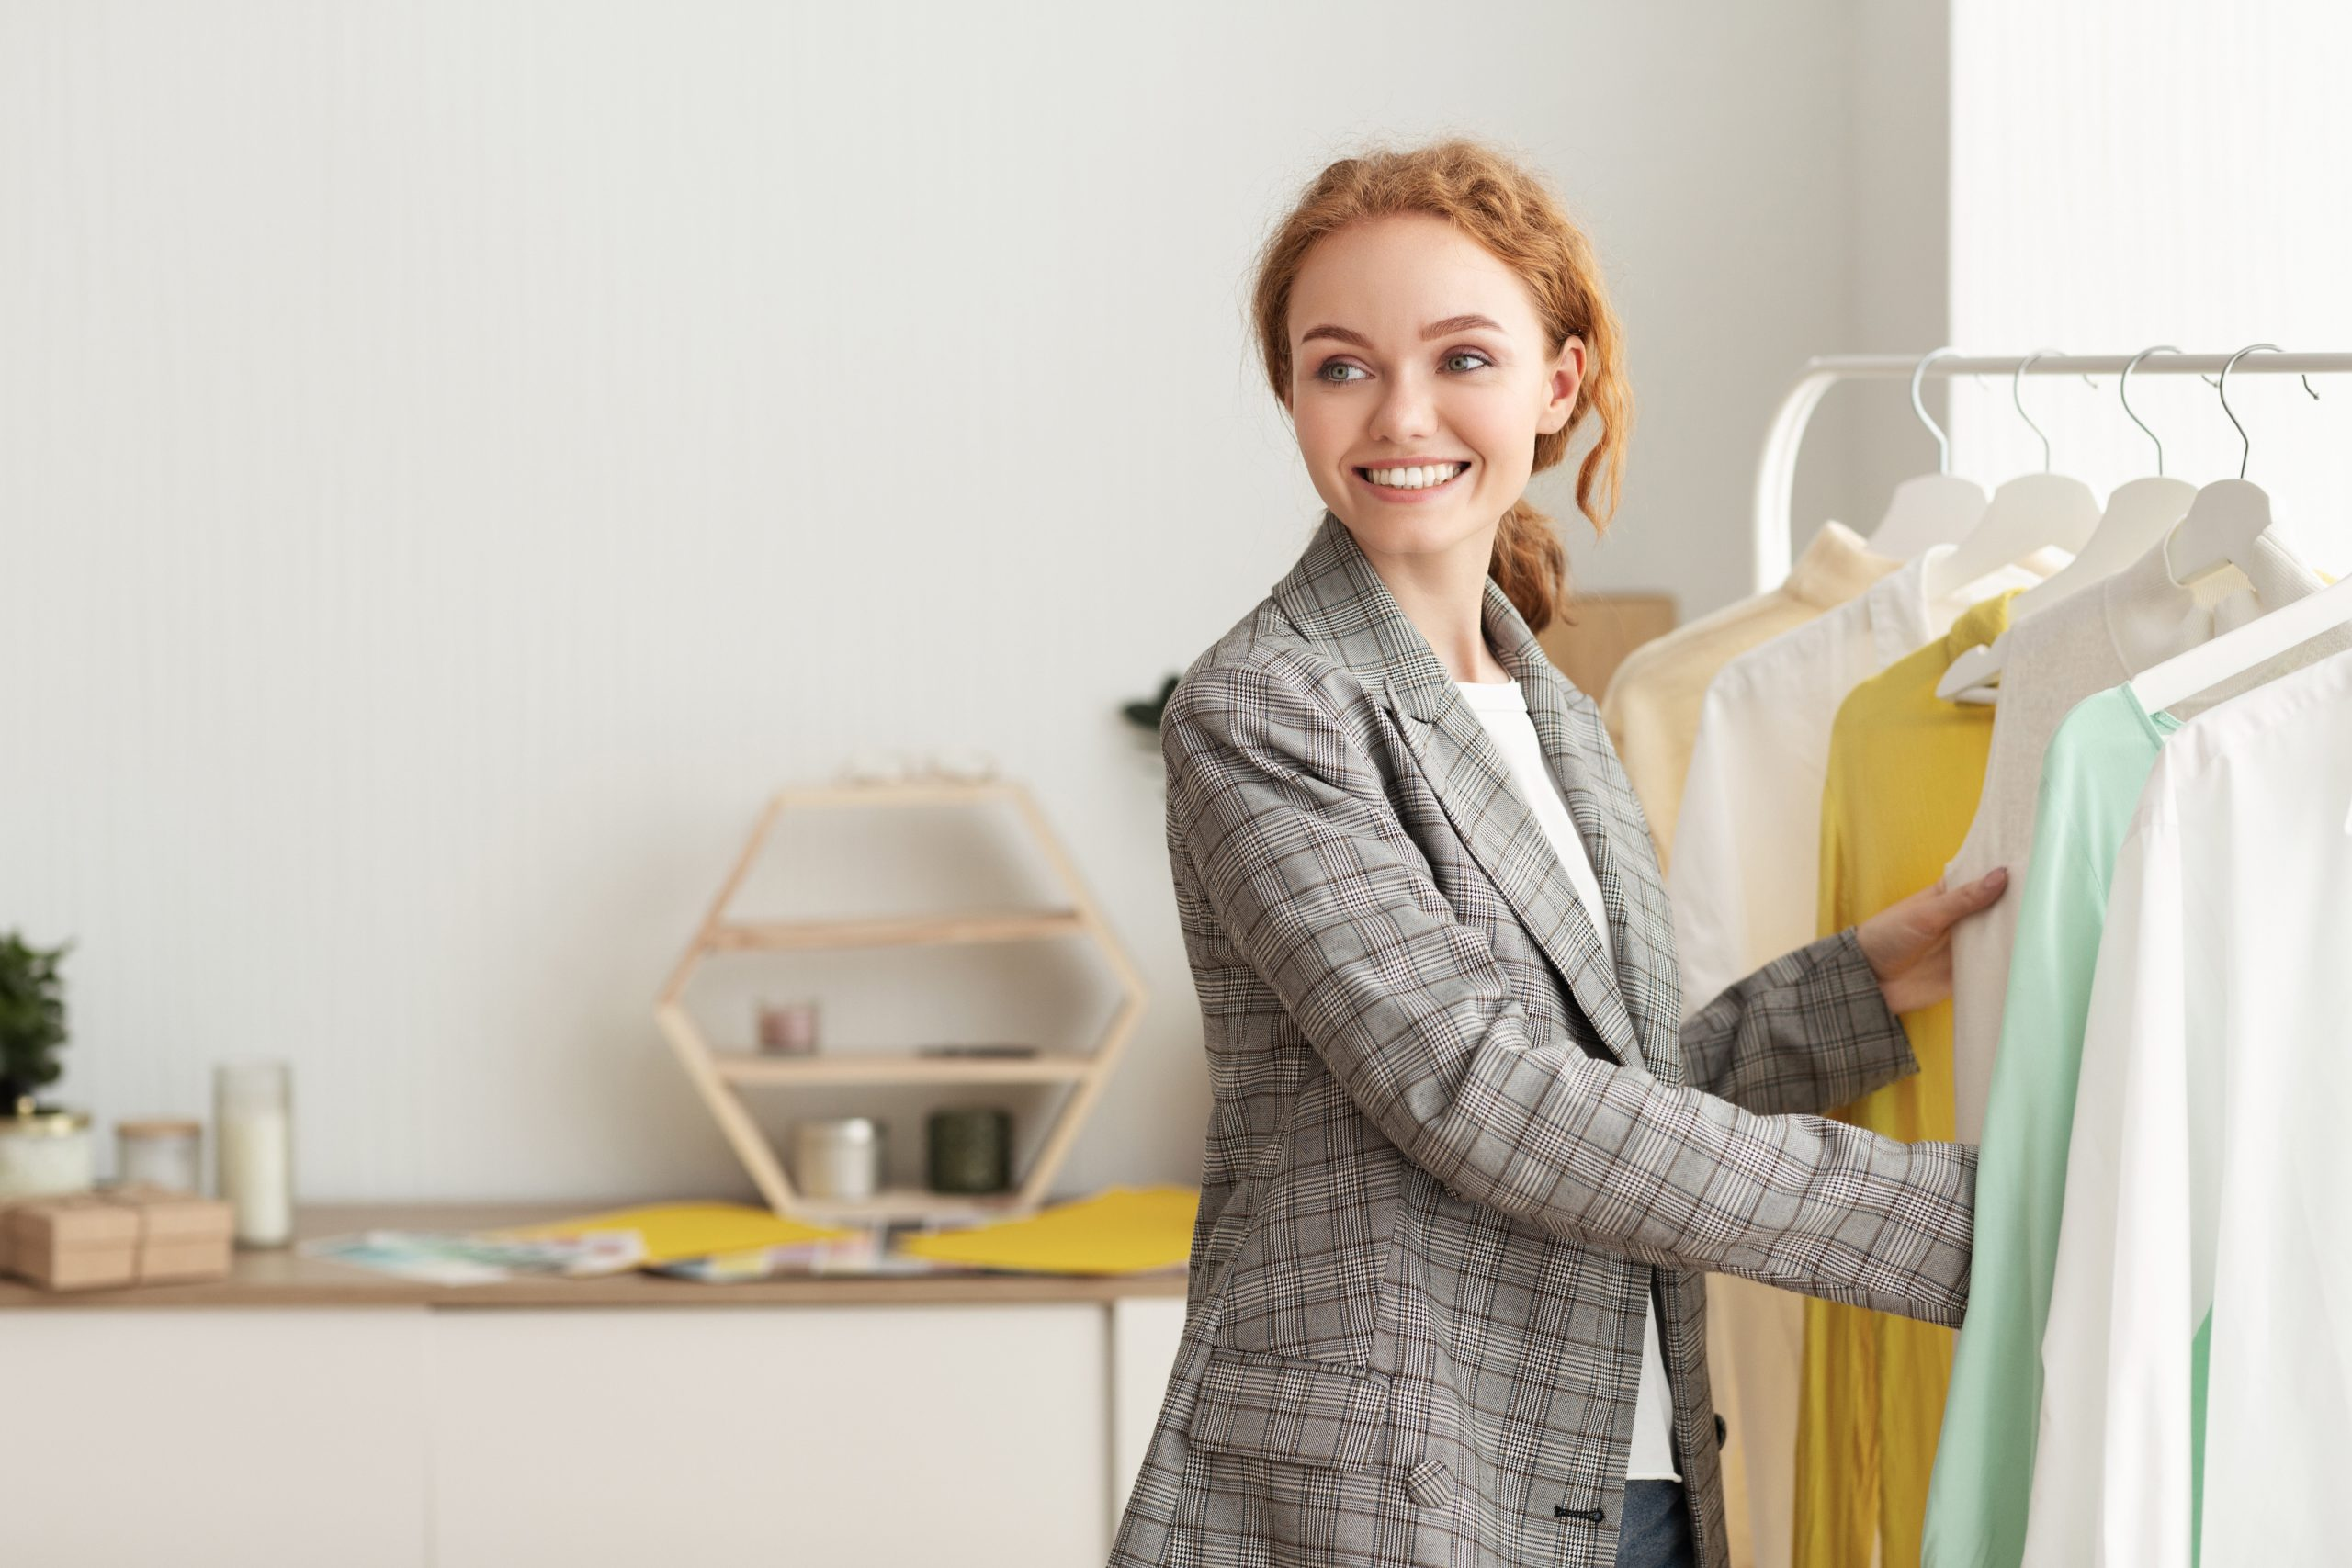 Happy woman buying new clothes in showroom